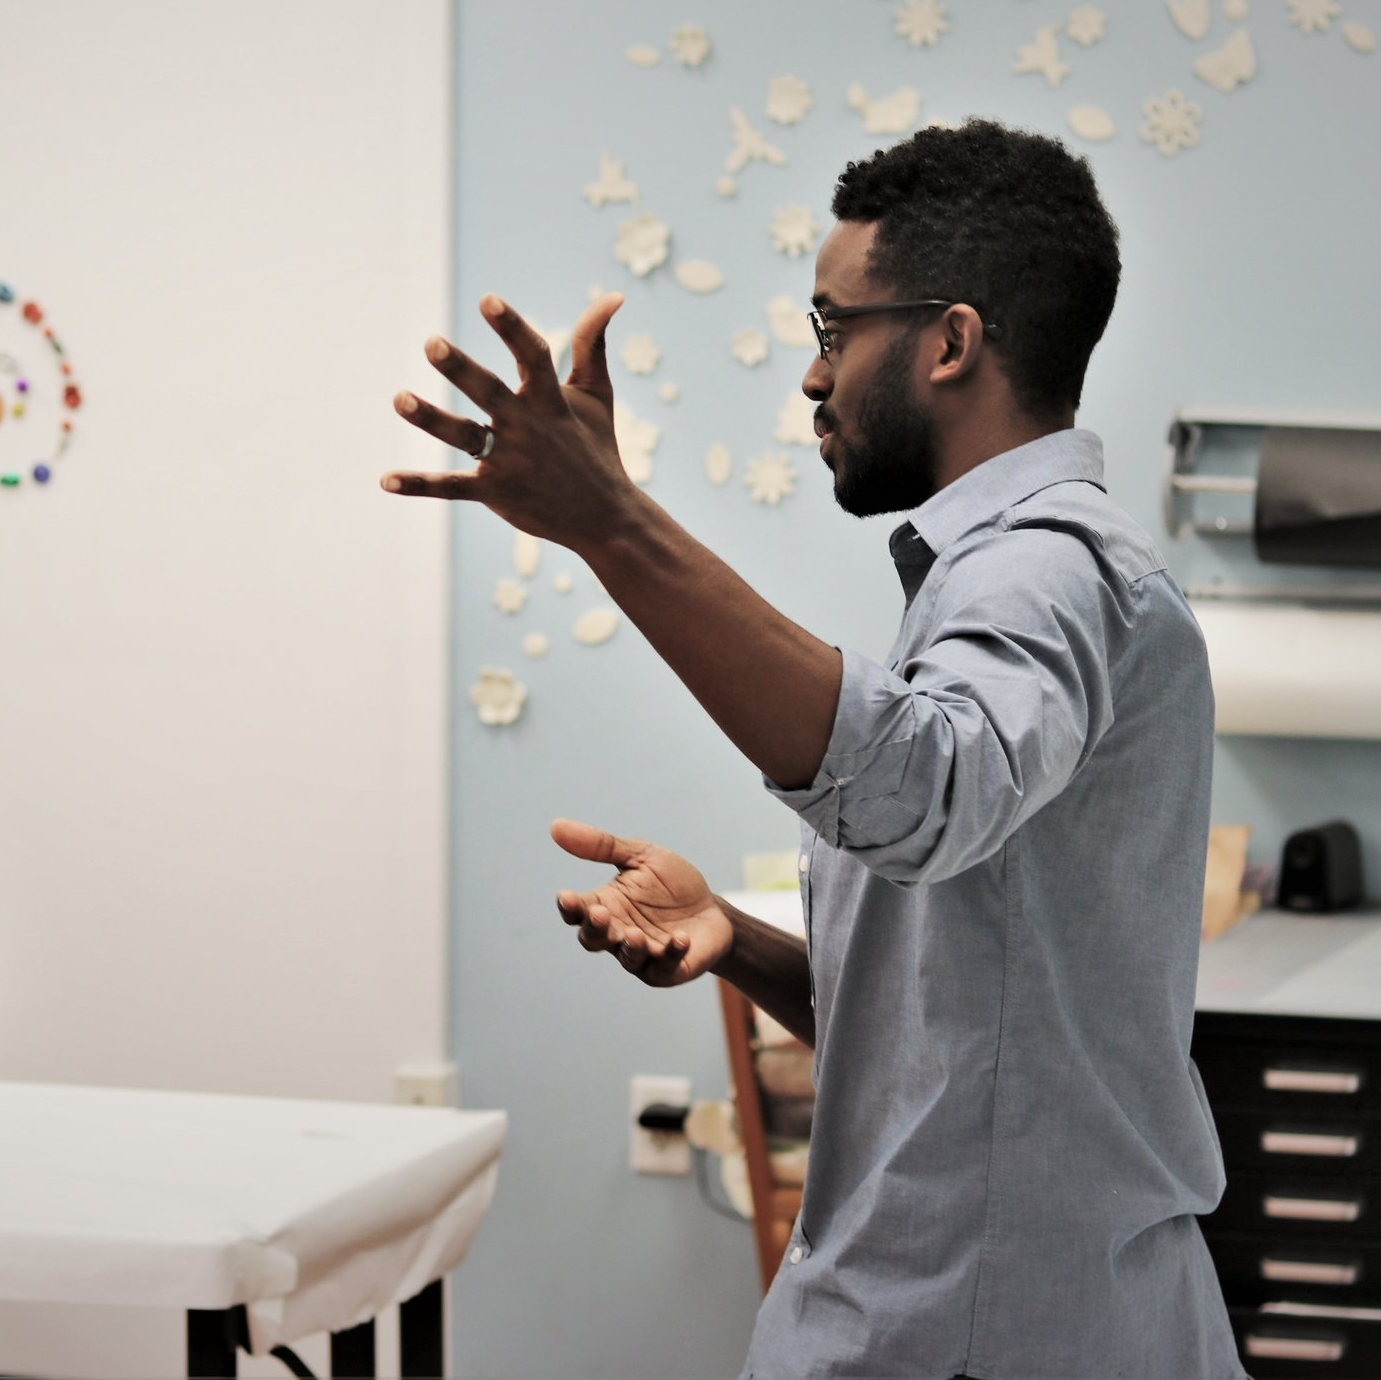 Marcus Monroe is an architect, educator and founder of the Young Architects Workshop. He is dedicated in inspiring today's youth to pursue careers in design with real world impact.